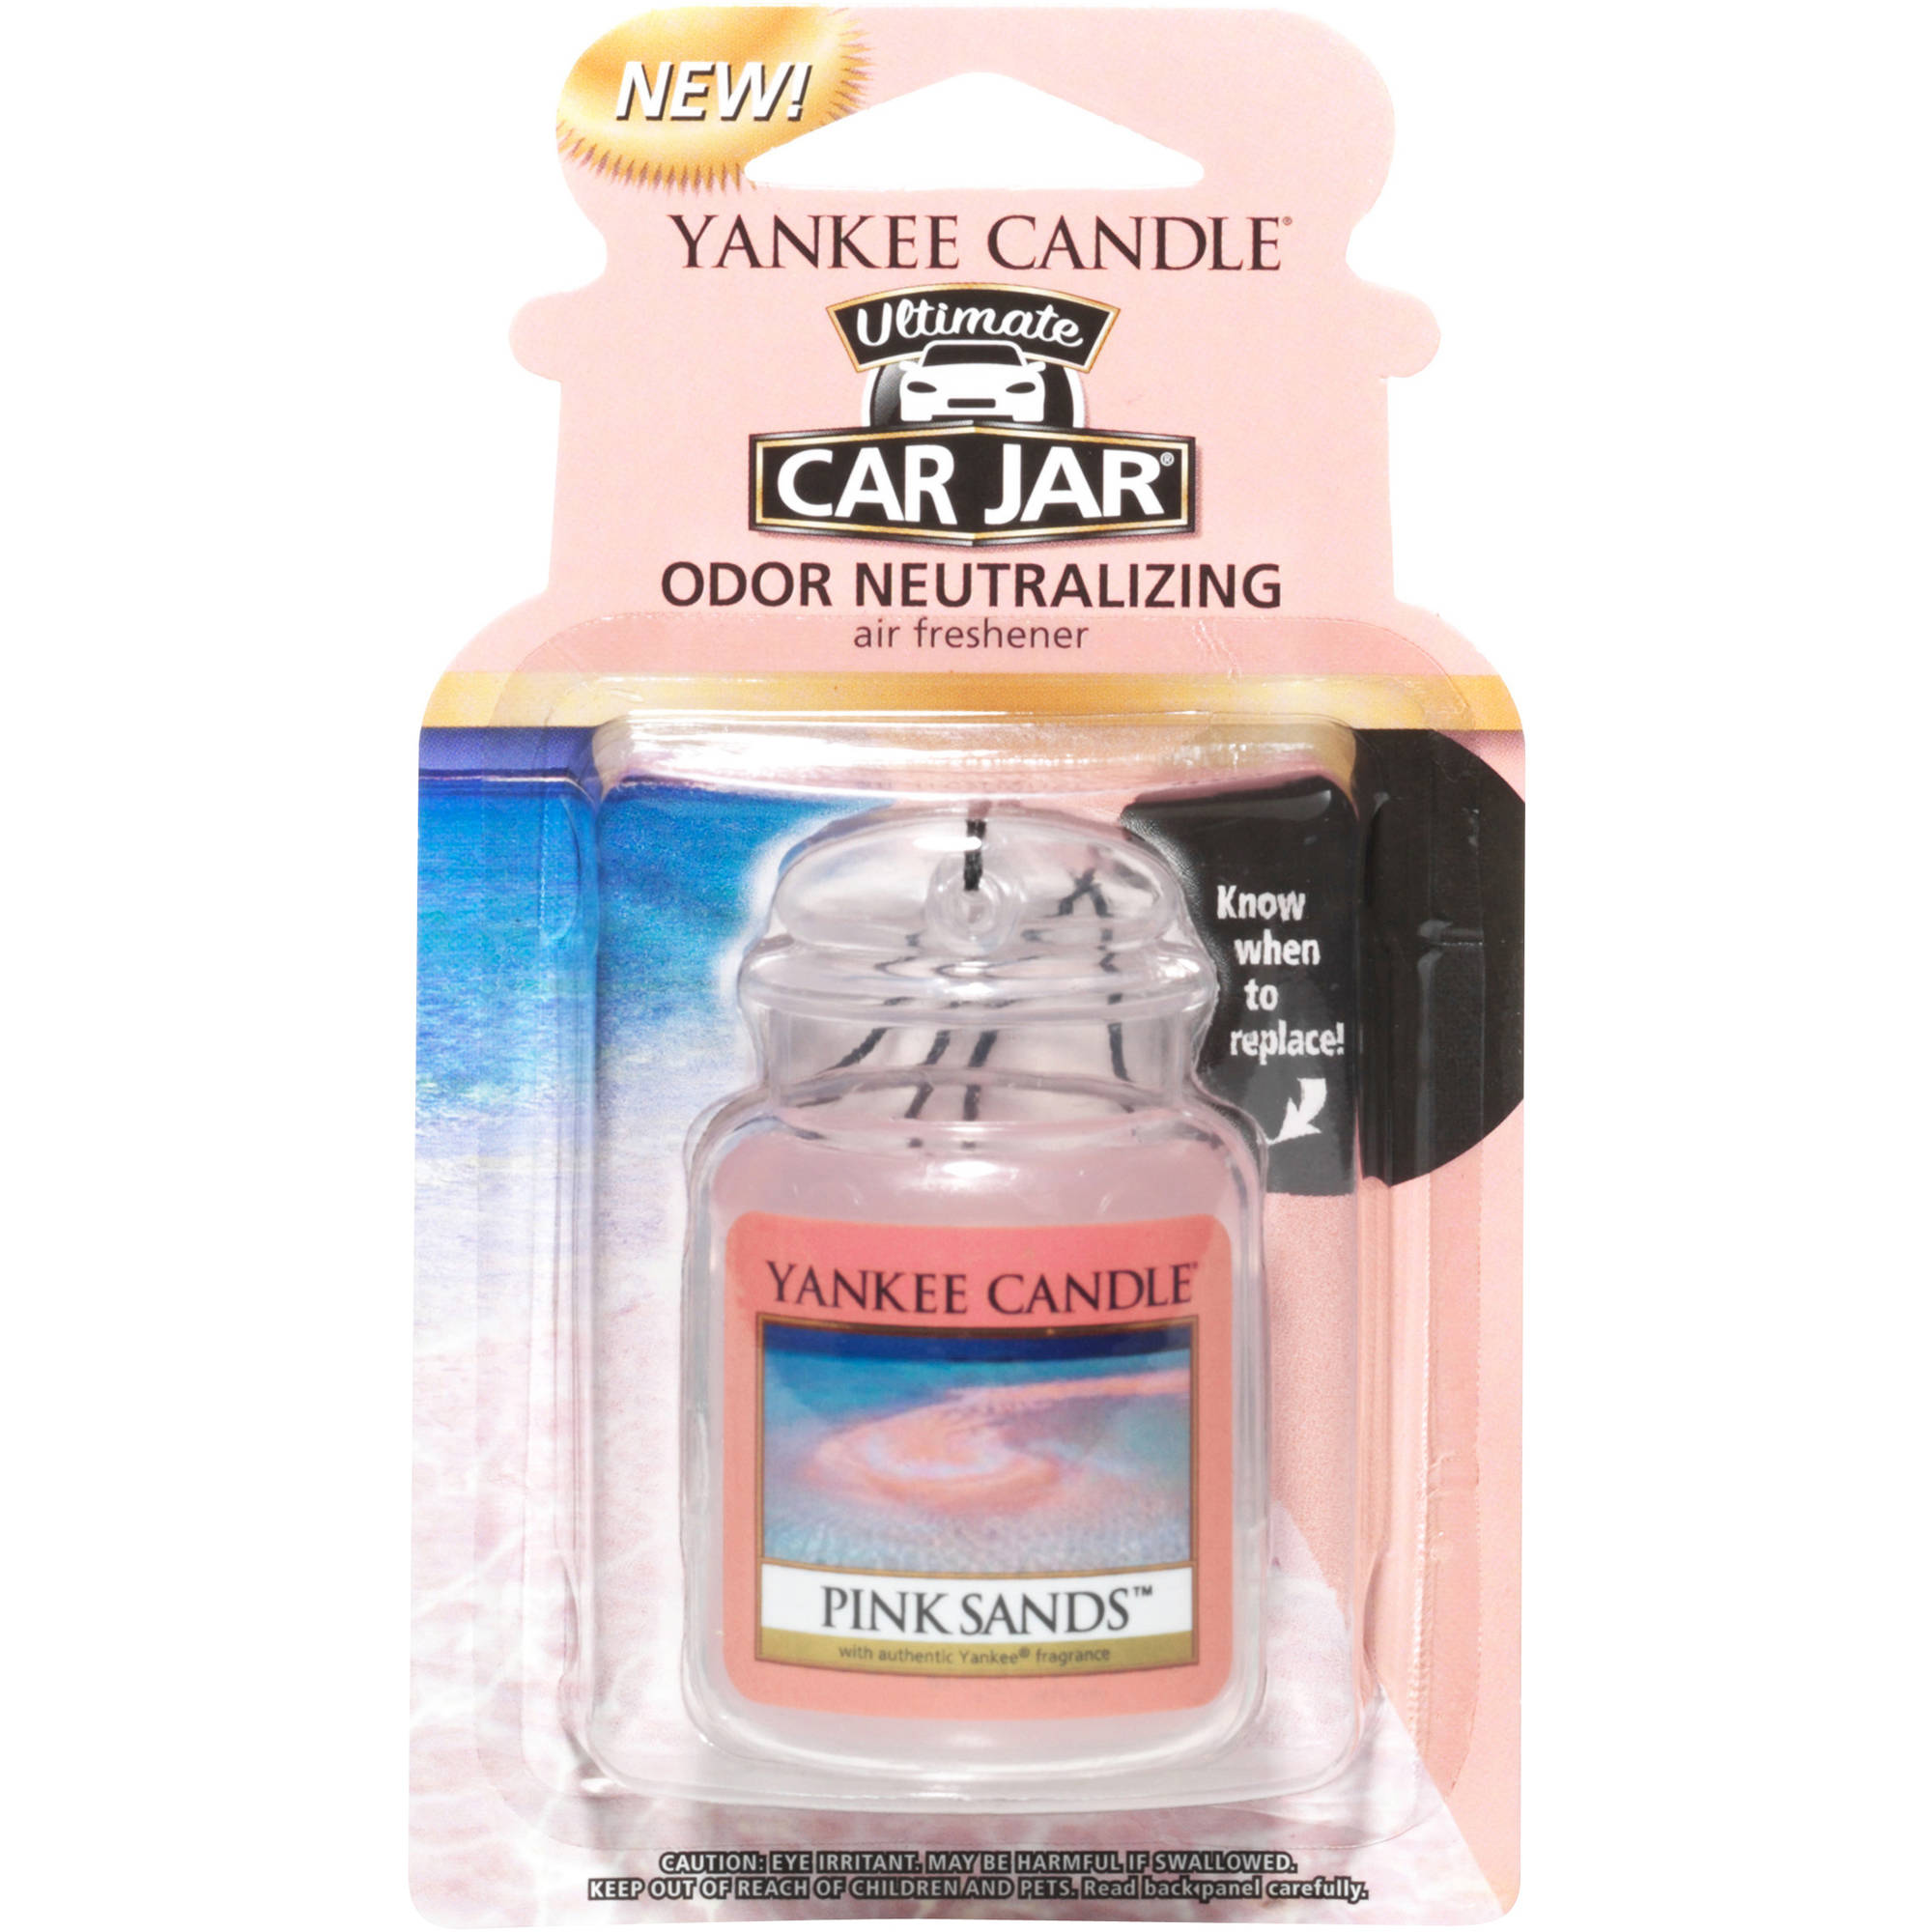 Yankee Candle Ultimate Car Jar Pink Sands Air Freshener - Walmart.com